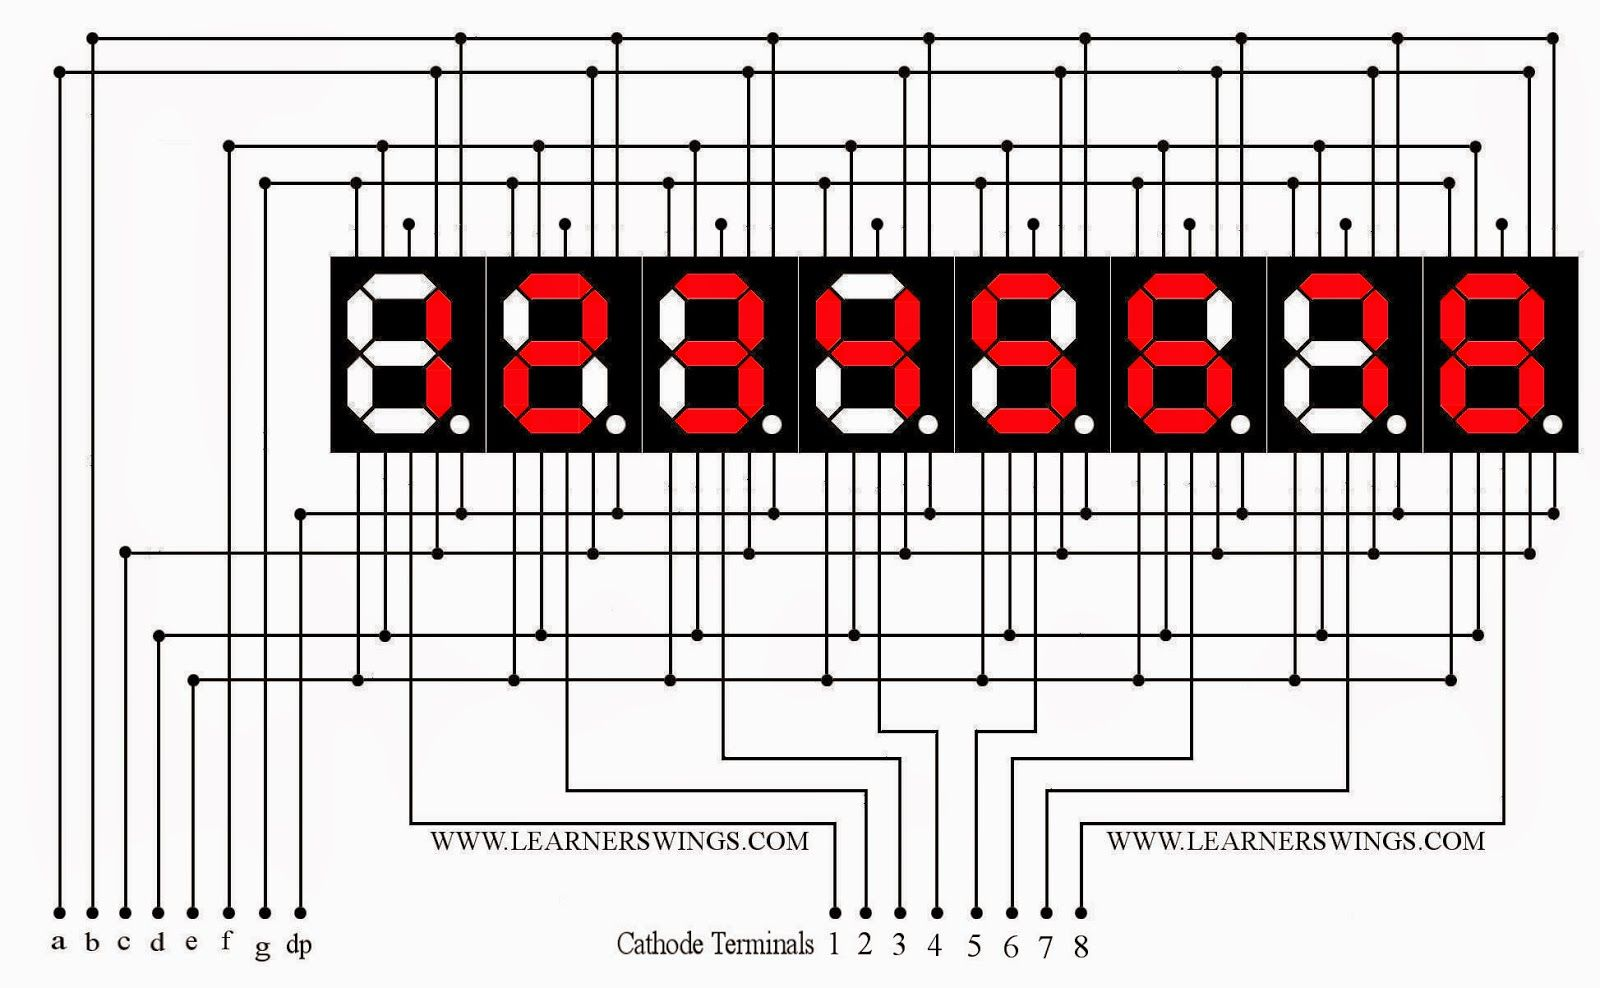 Pin By Febin Antony On My Funny Electronics Pinterest Circuit Led Lighting Design Easy To Understand Guide Circuits Tech How Consider The Segments Of A Cluster 8 Common Cathode Seven Segment Displays As